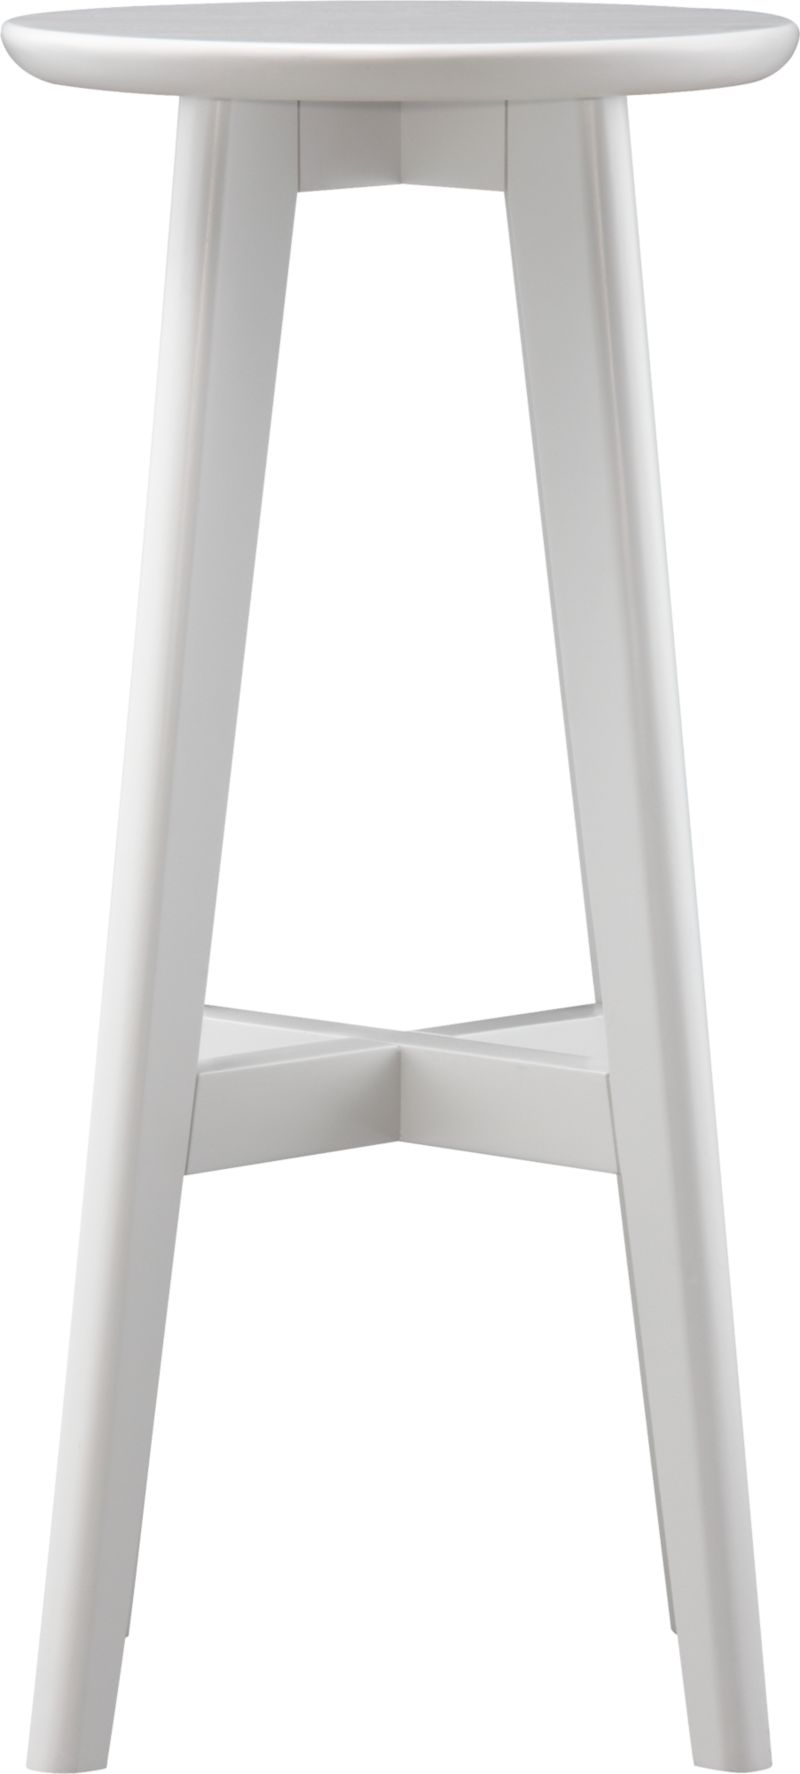 "Our classic, versatile stool takes a clean and simple stance in solid painted rubberwood with a clear lacquer finish and provides seating sized right for bars. Crossbar brace makes a comfortable footrest.<br /><br /><NEWTAG/><ul><li>Solid rubberwood</li><li>Lacquer finish</li><li>30""H seat sized for bars</li></ul>"